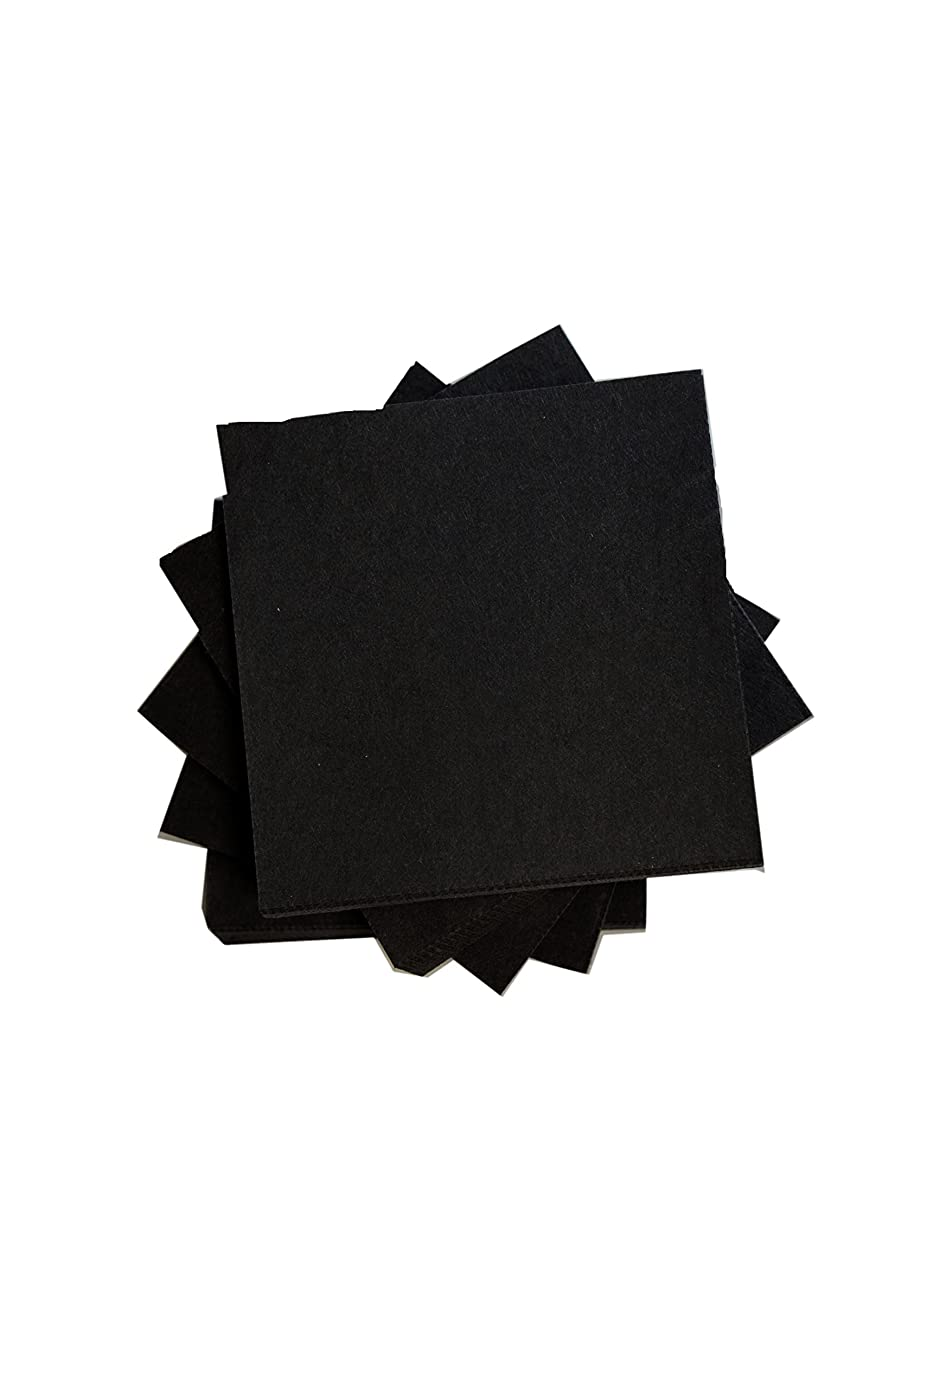 Exquisite B41866 Heavy Cutaway Embroidery Backing, Black